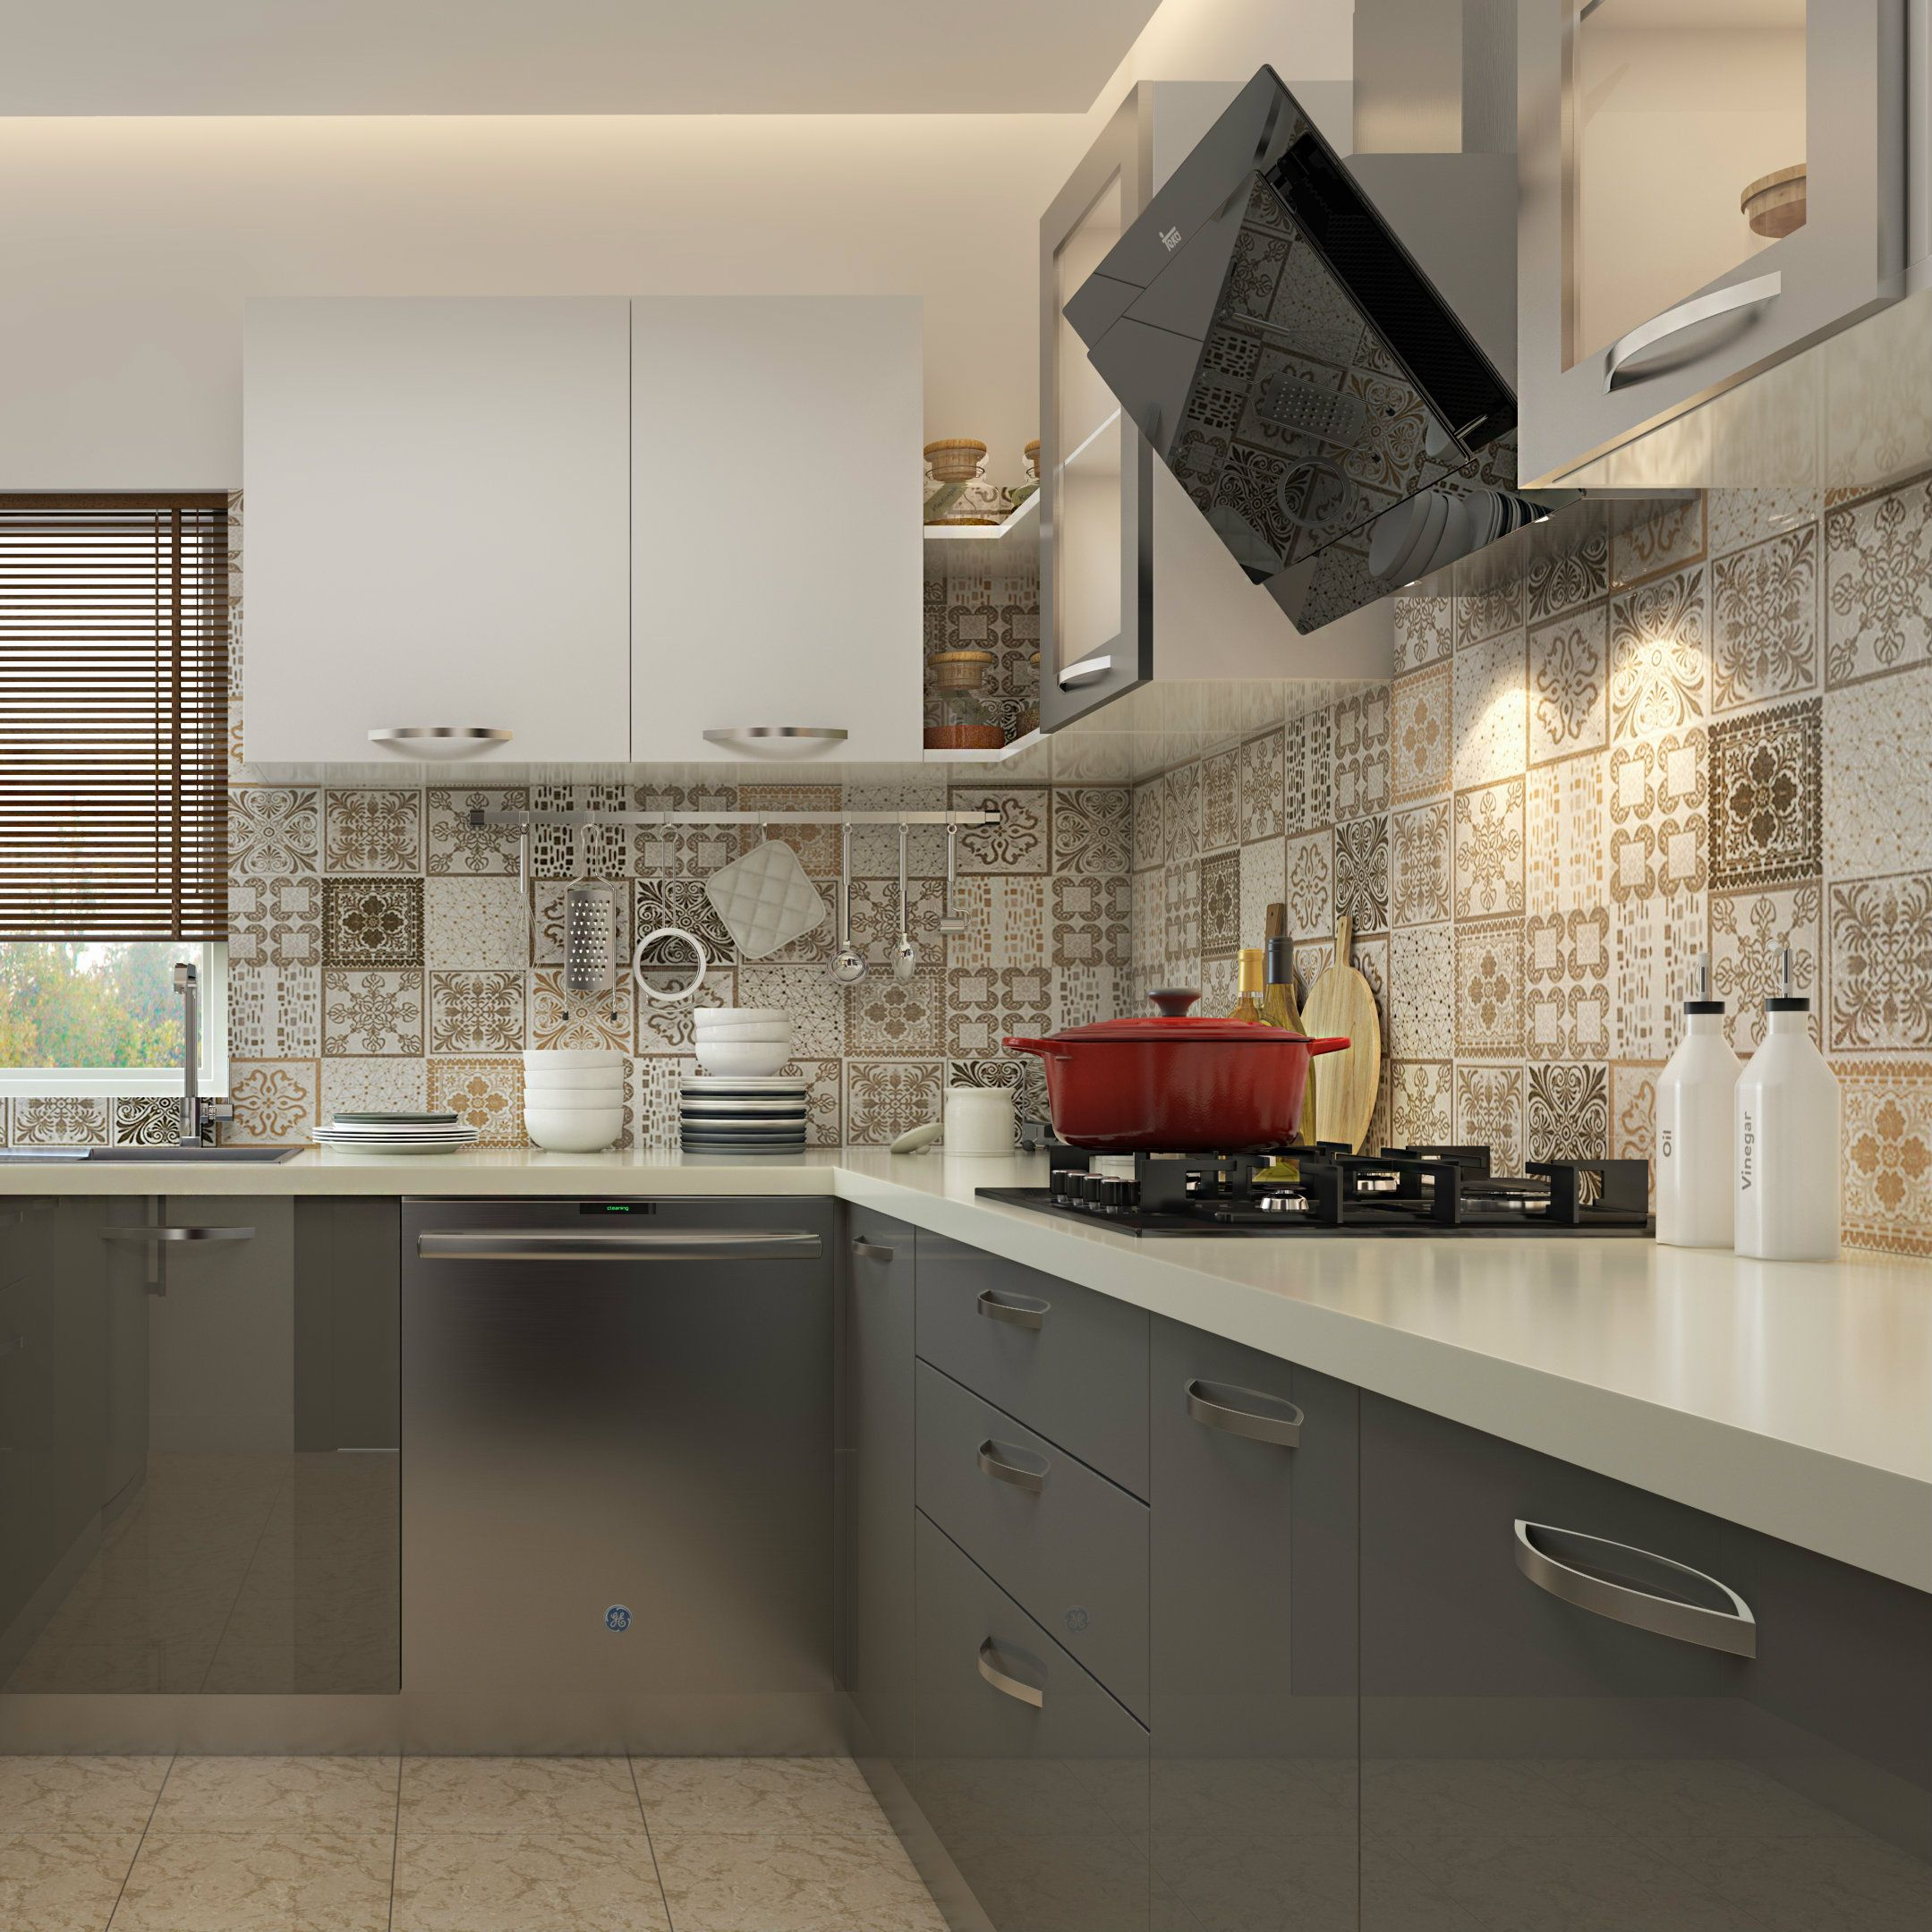 A simple modular kitchen that employs cool neutral hues ...